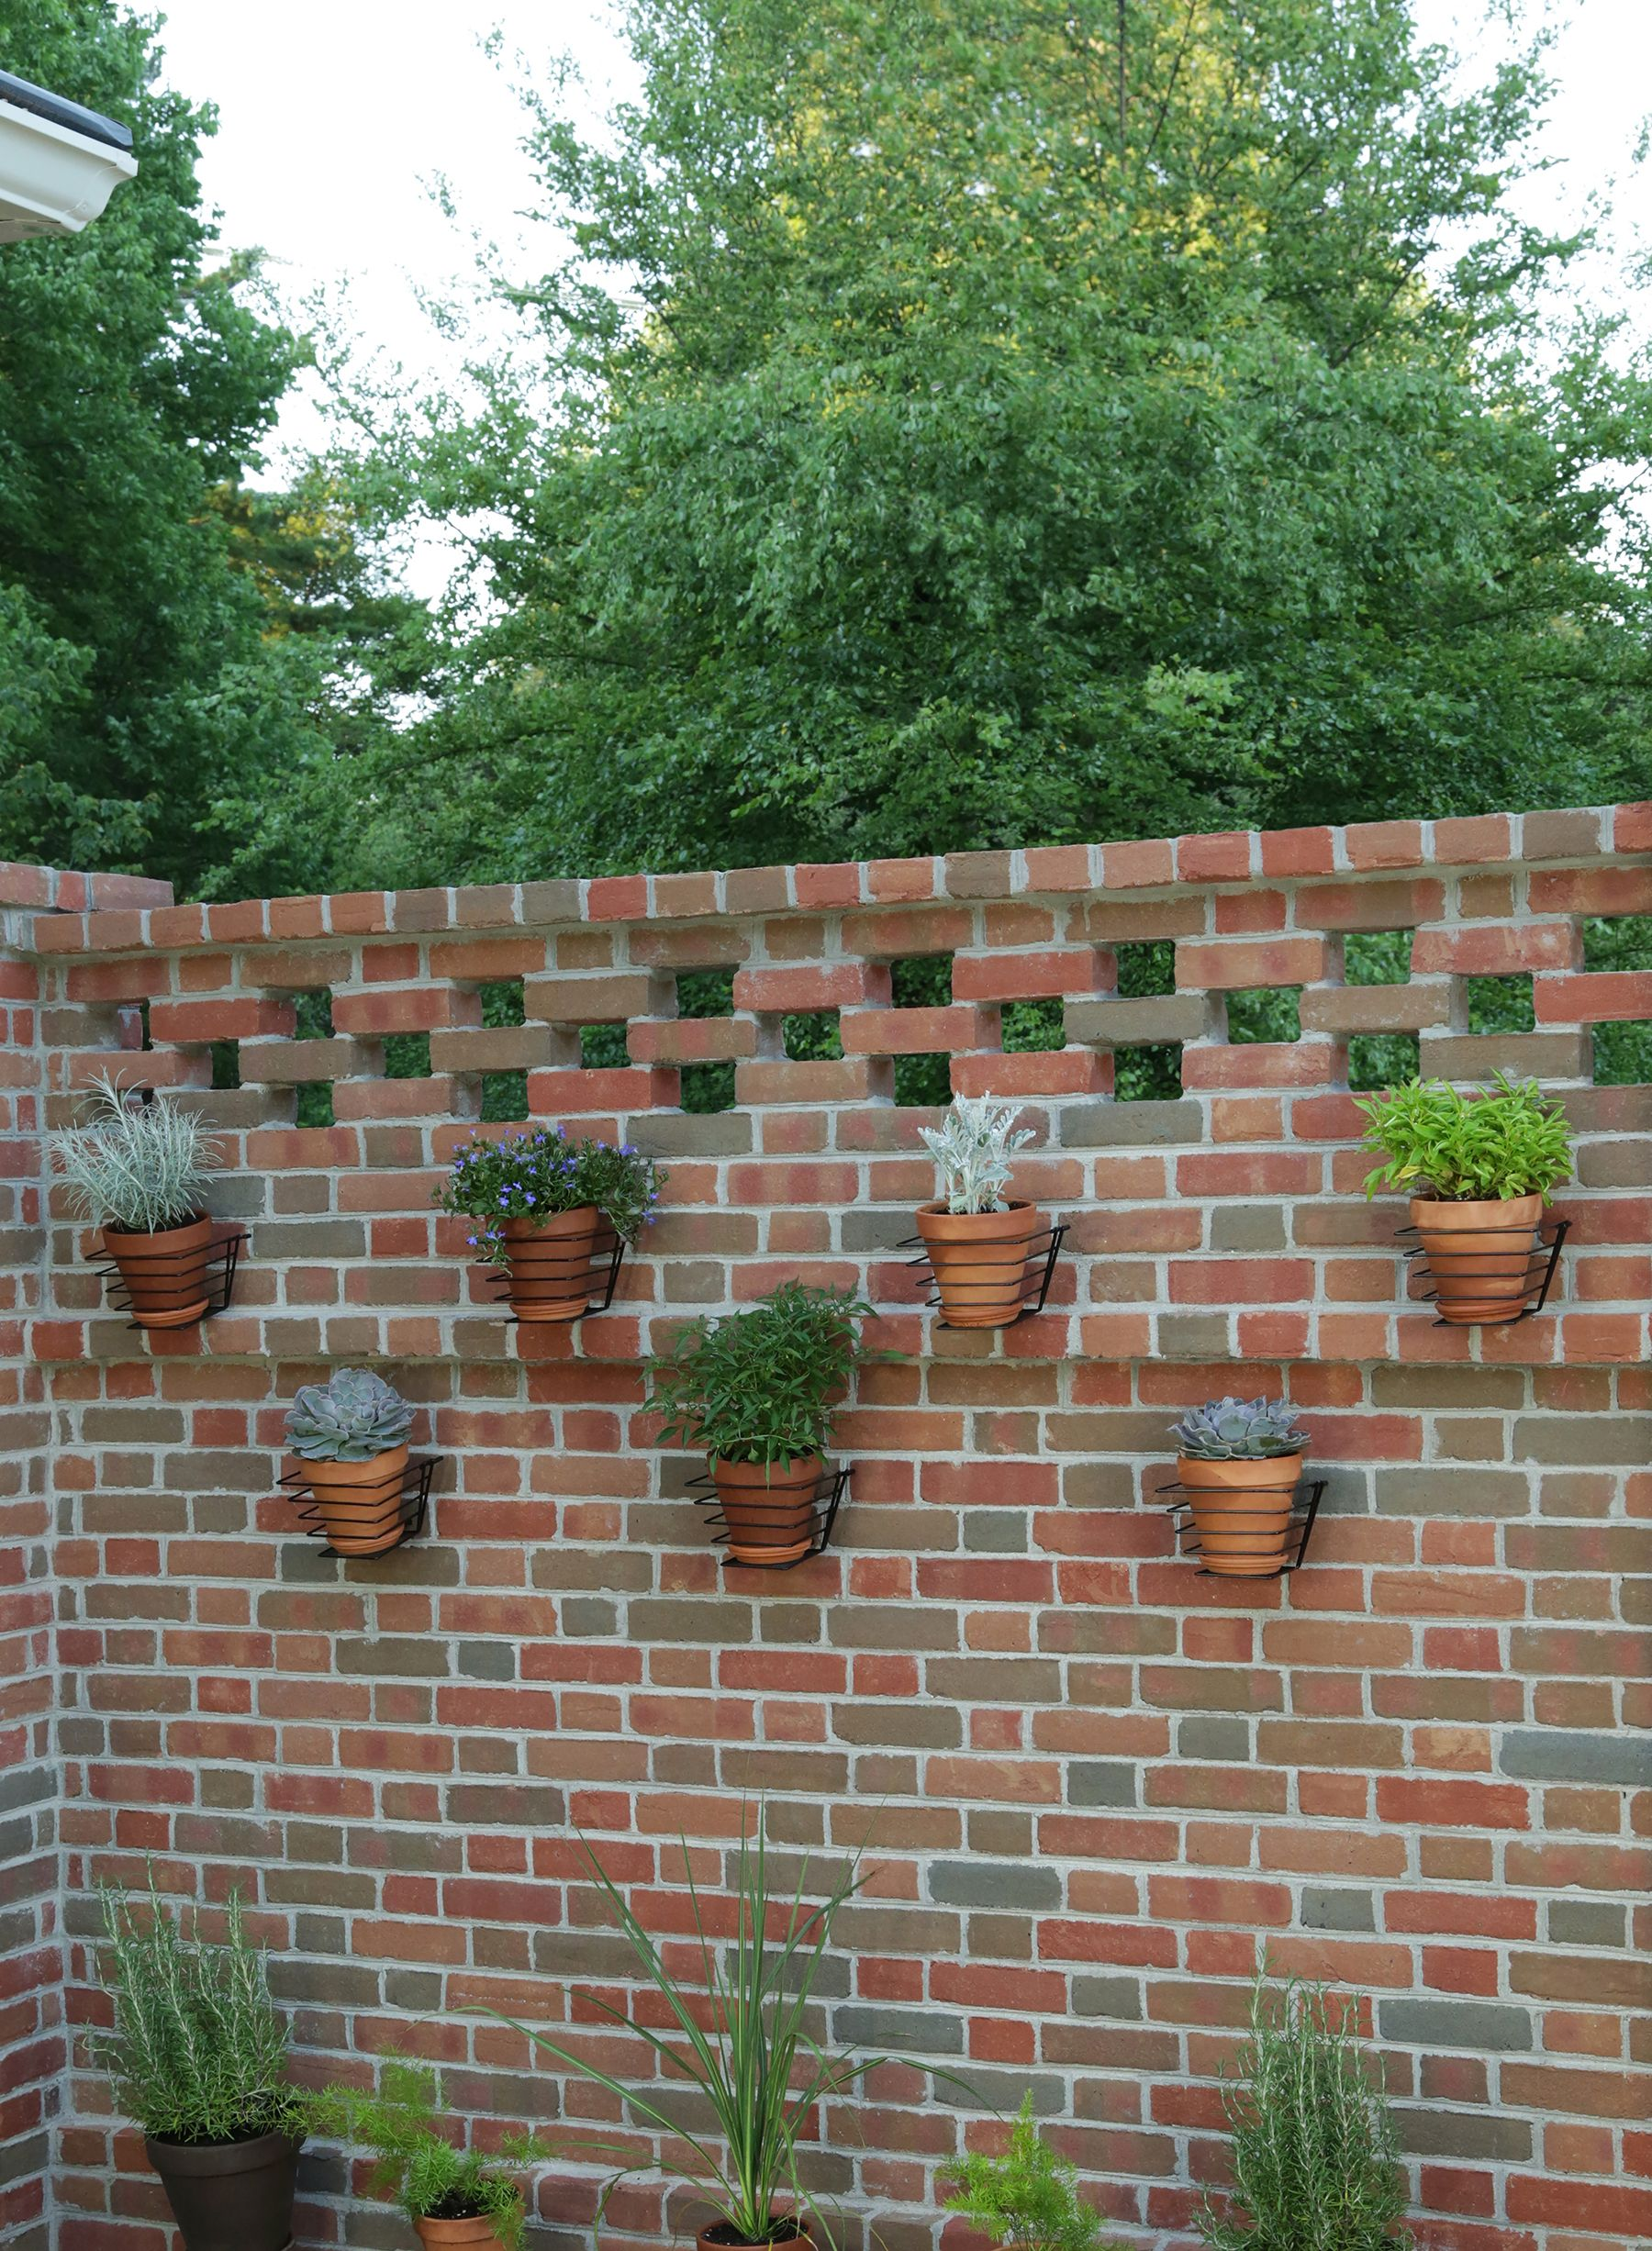 Brick Wall Herb And Flower Planters We Added To Another Section Of